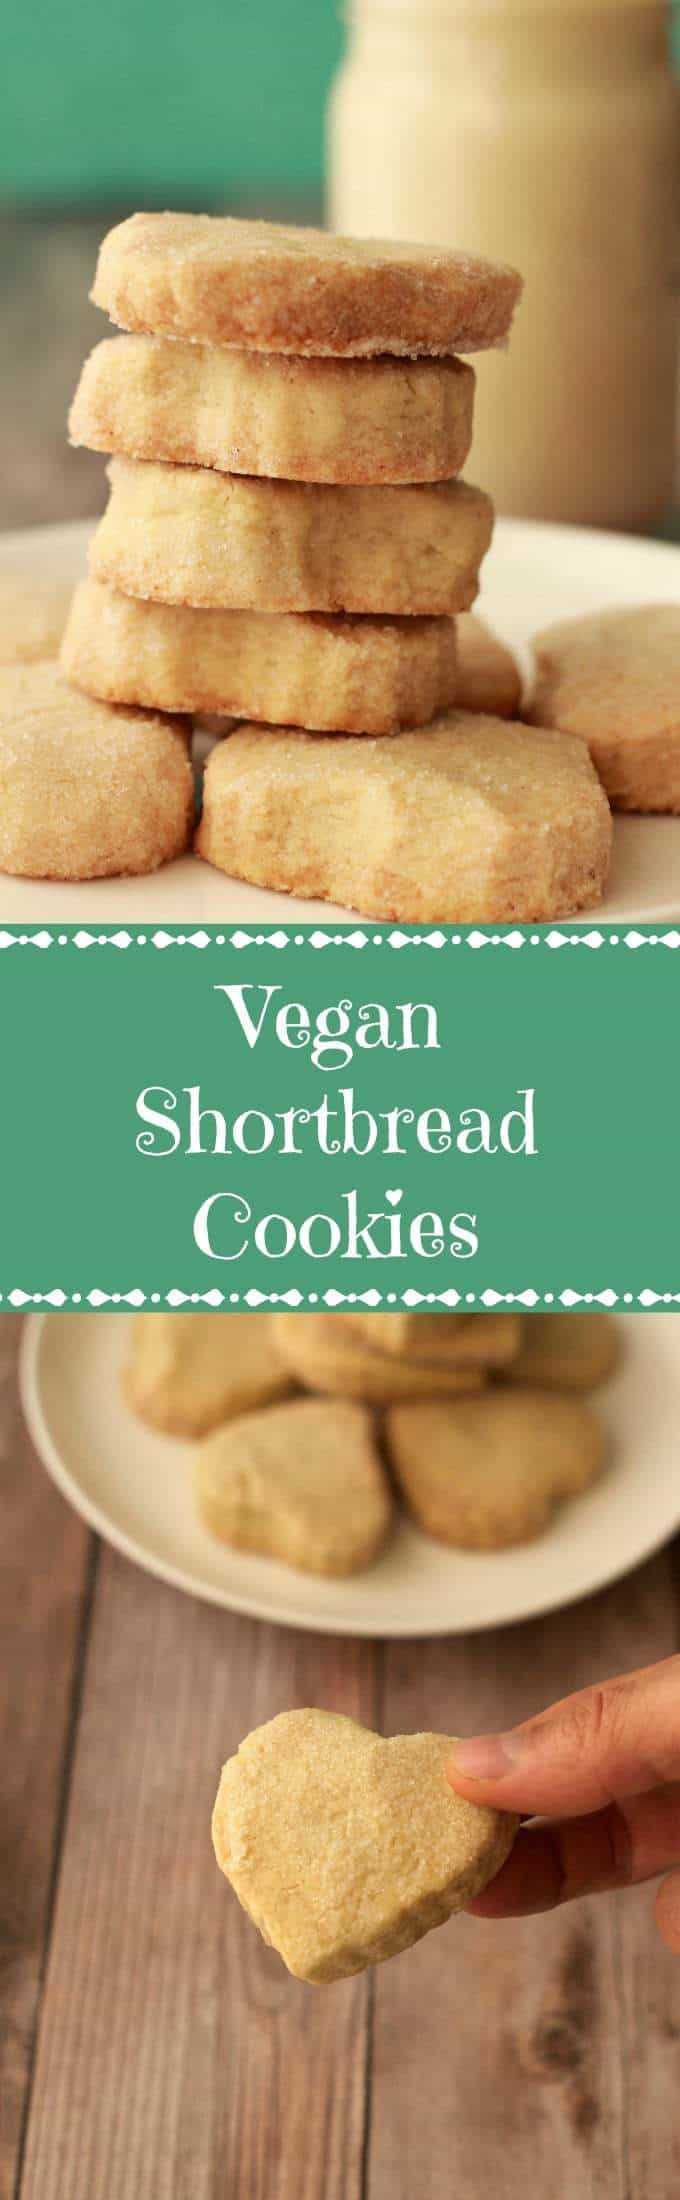 Perfectly crunchy vegan shortbread cookies. This small batch recipe contains just 4-ingredients and makes 8-9 shortbread cookies. Easy and insanely good! | lovingitvegan.com